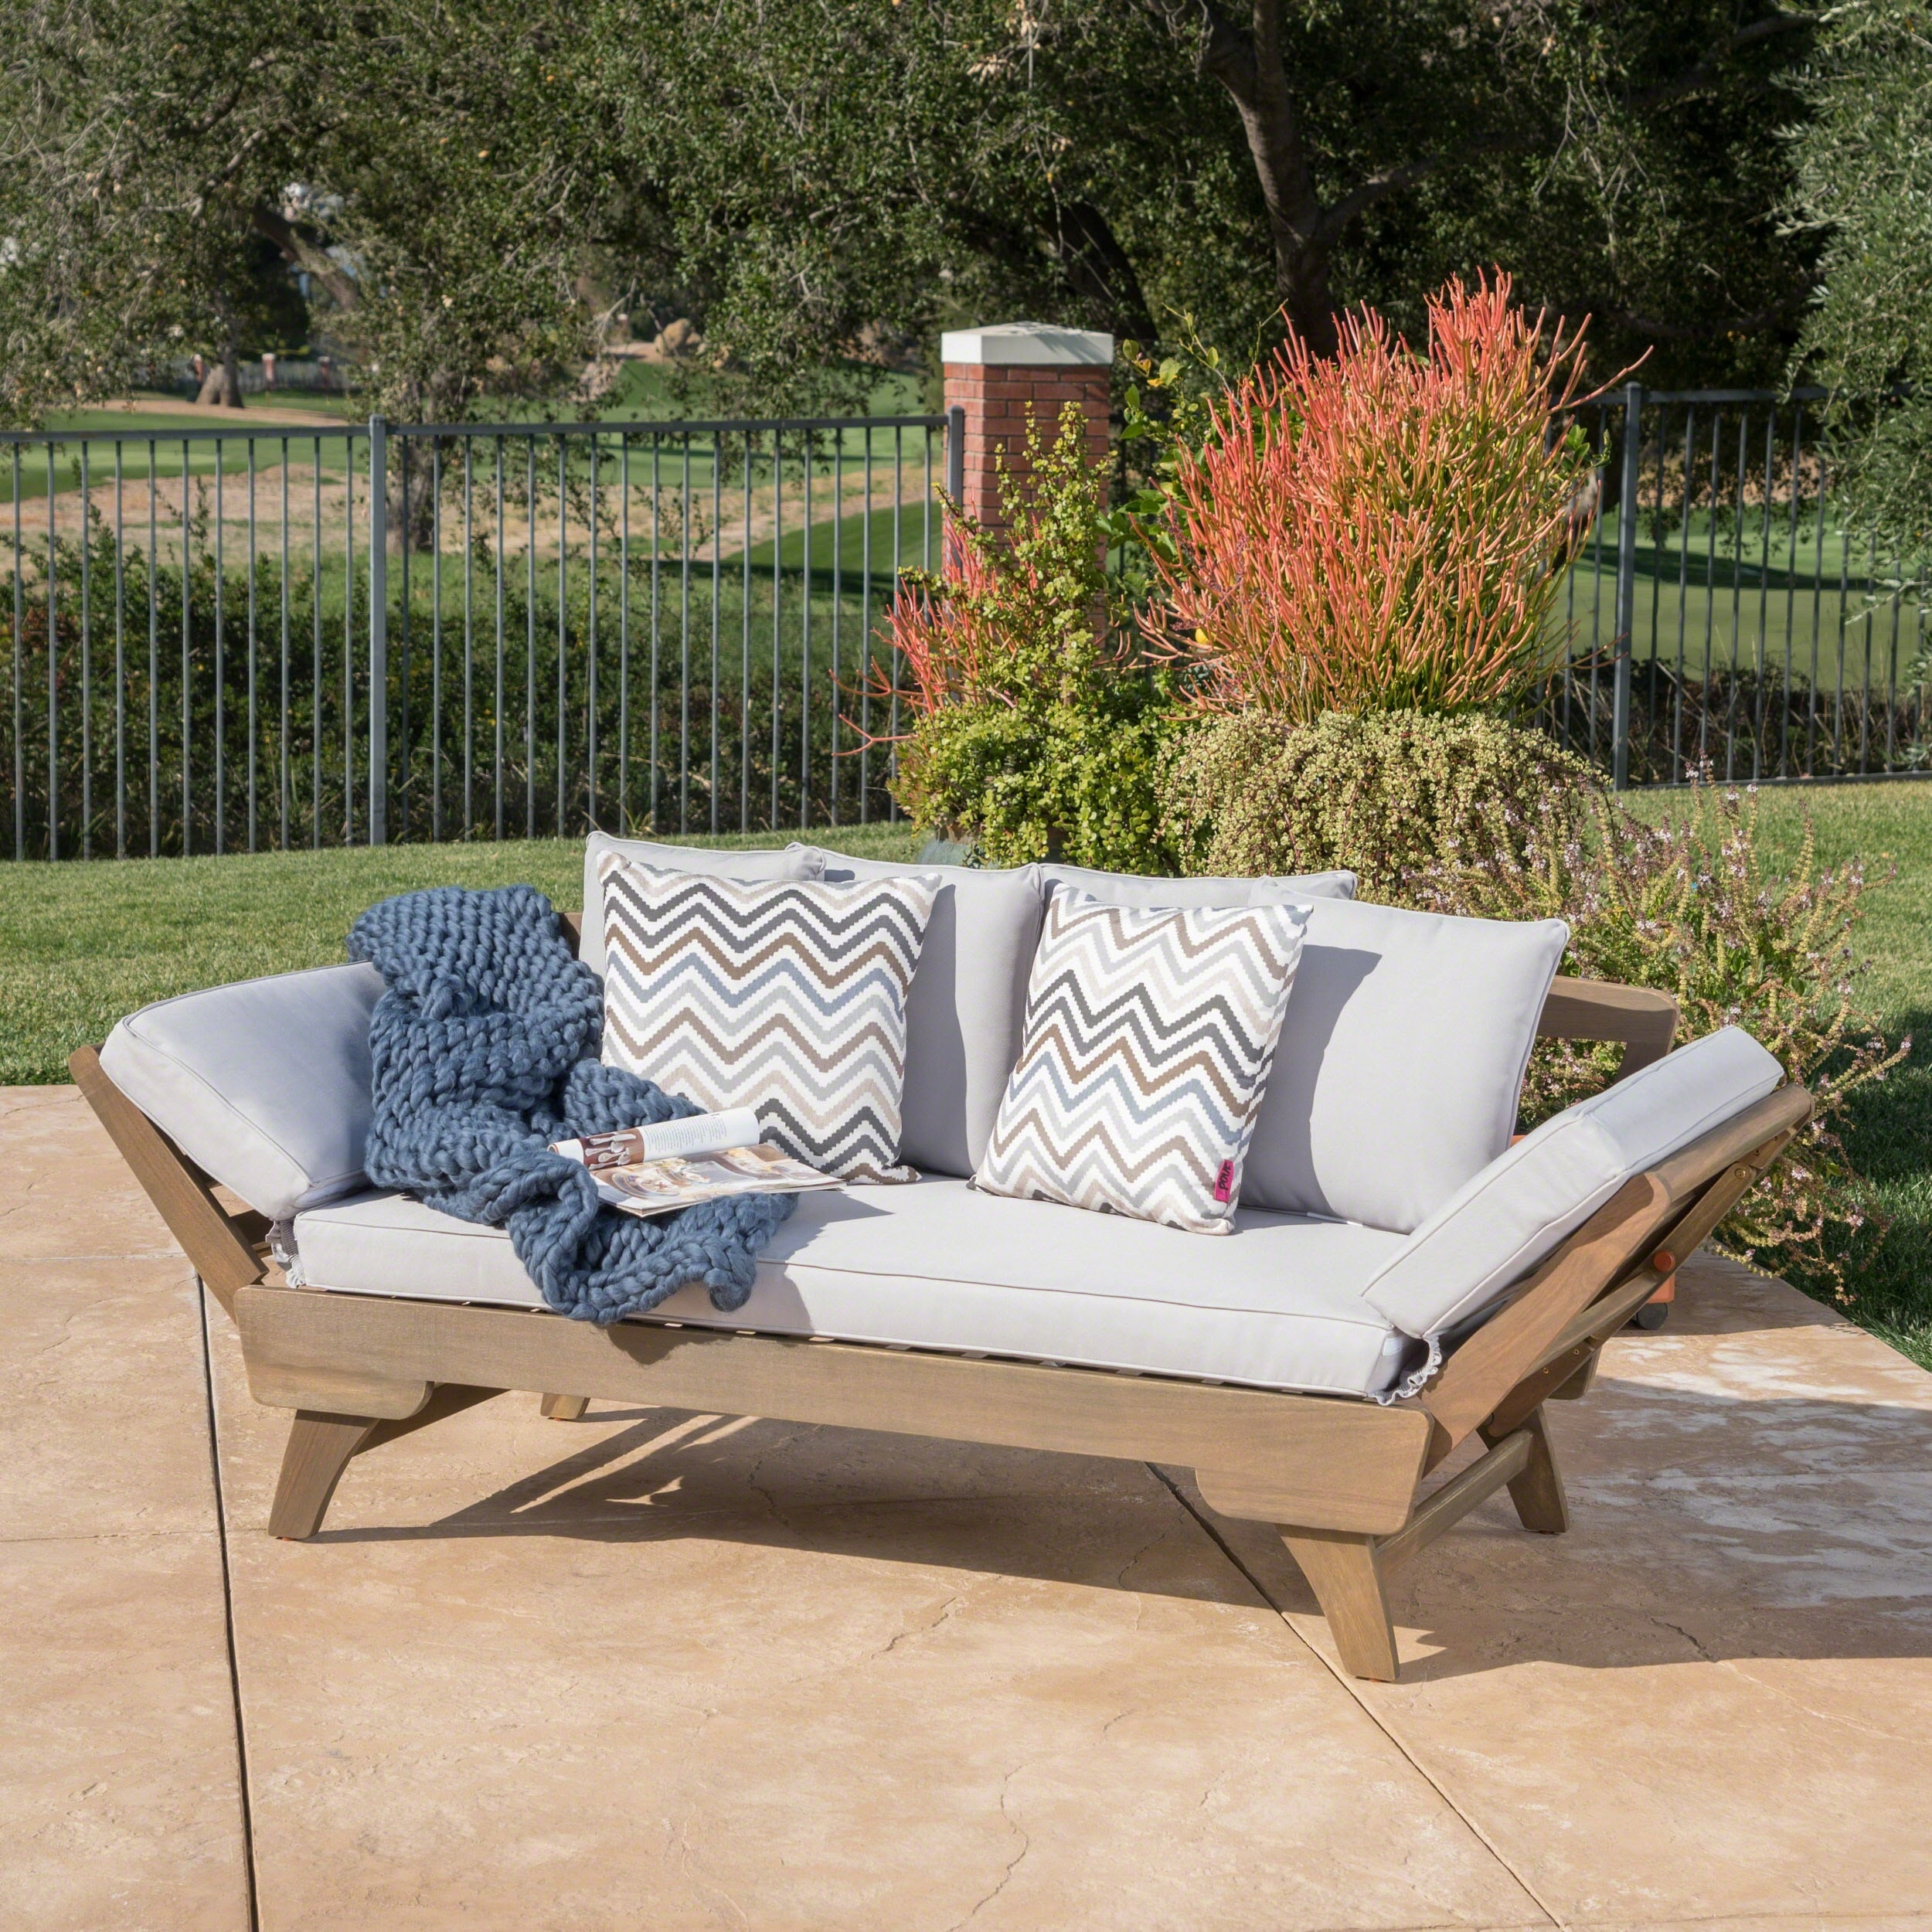 messina polanco wicker sofa patio sectional product living back all hayneedle master belham daybed weather curved cfm set